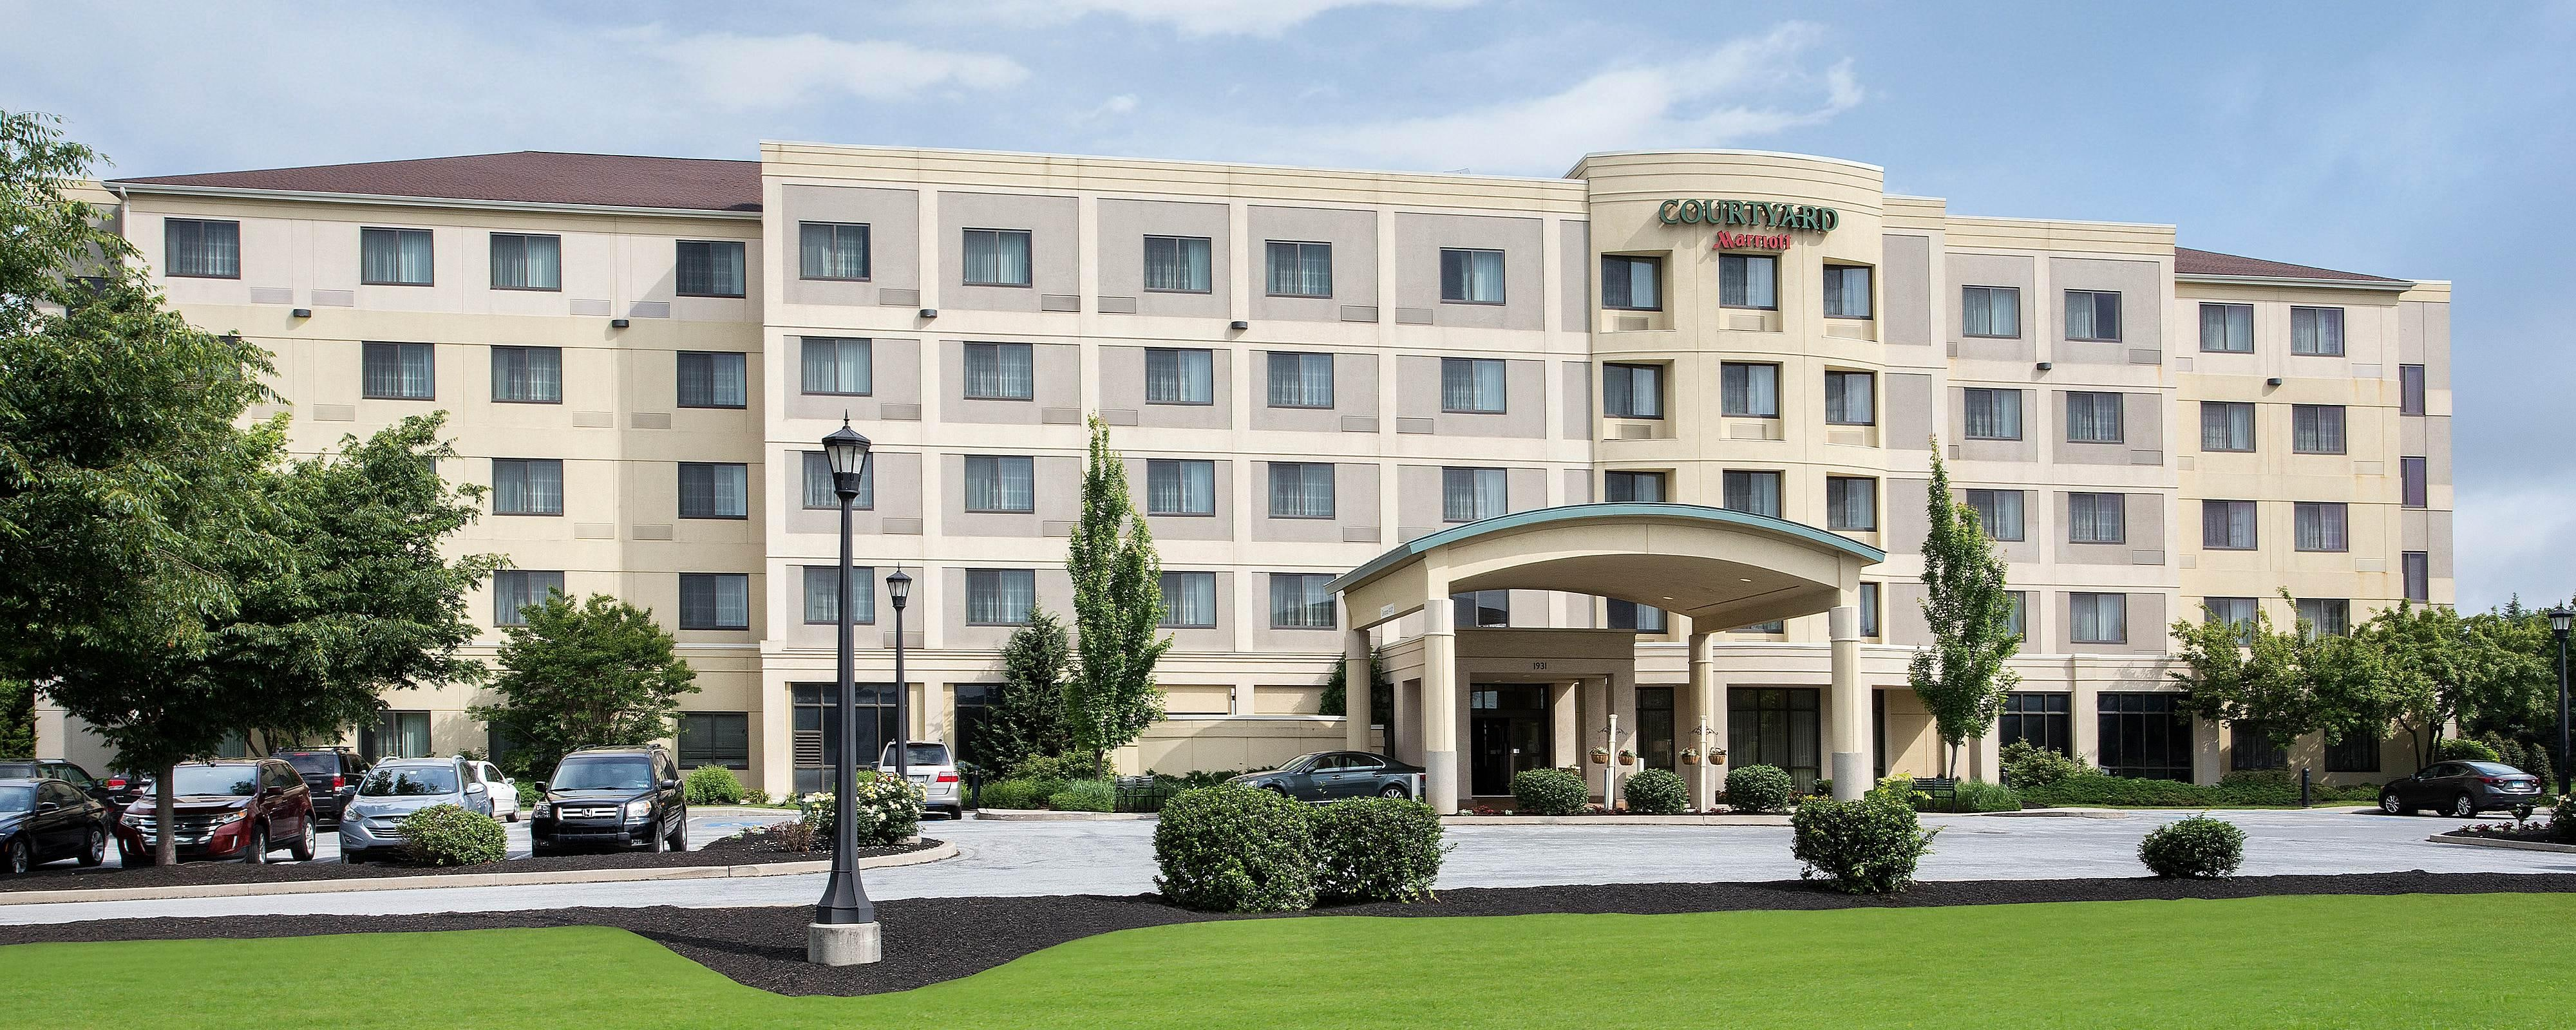 Hotels Near Lancaster Pa Outlets